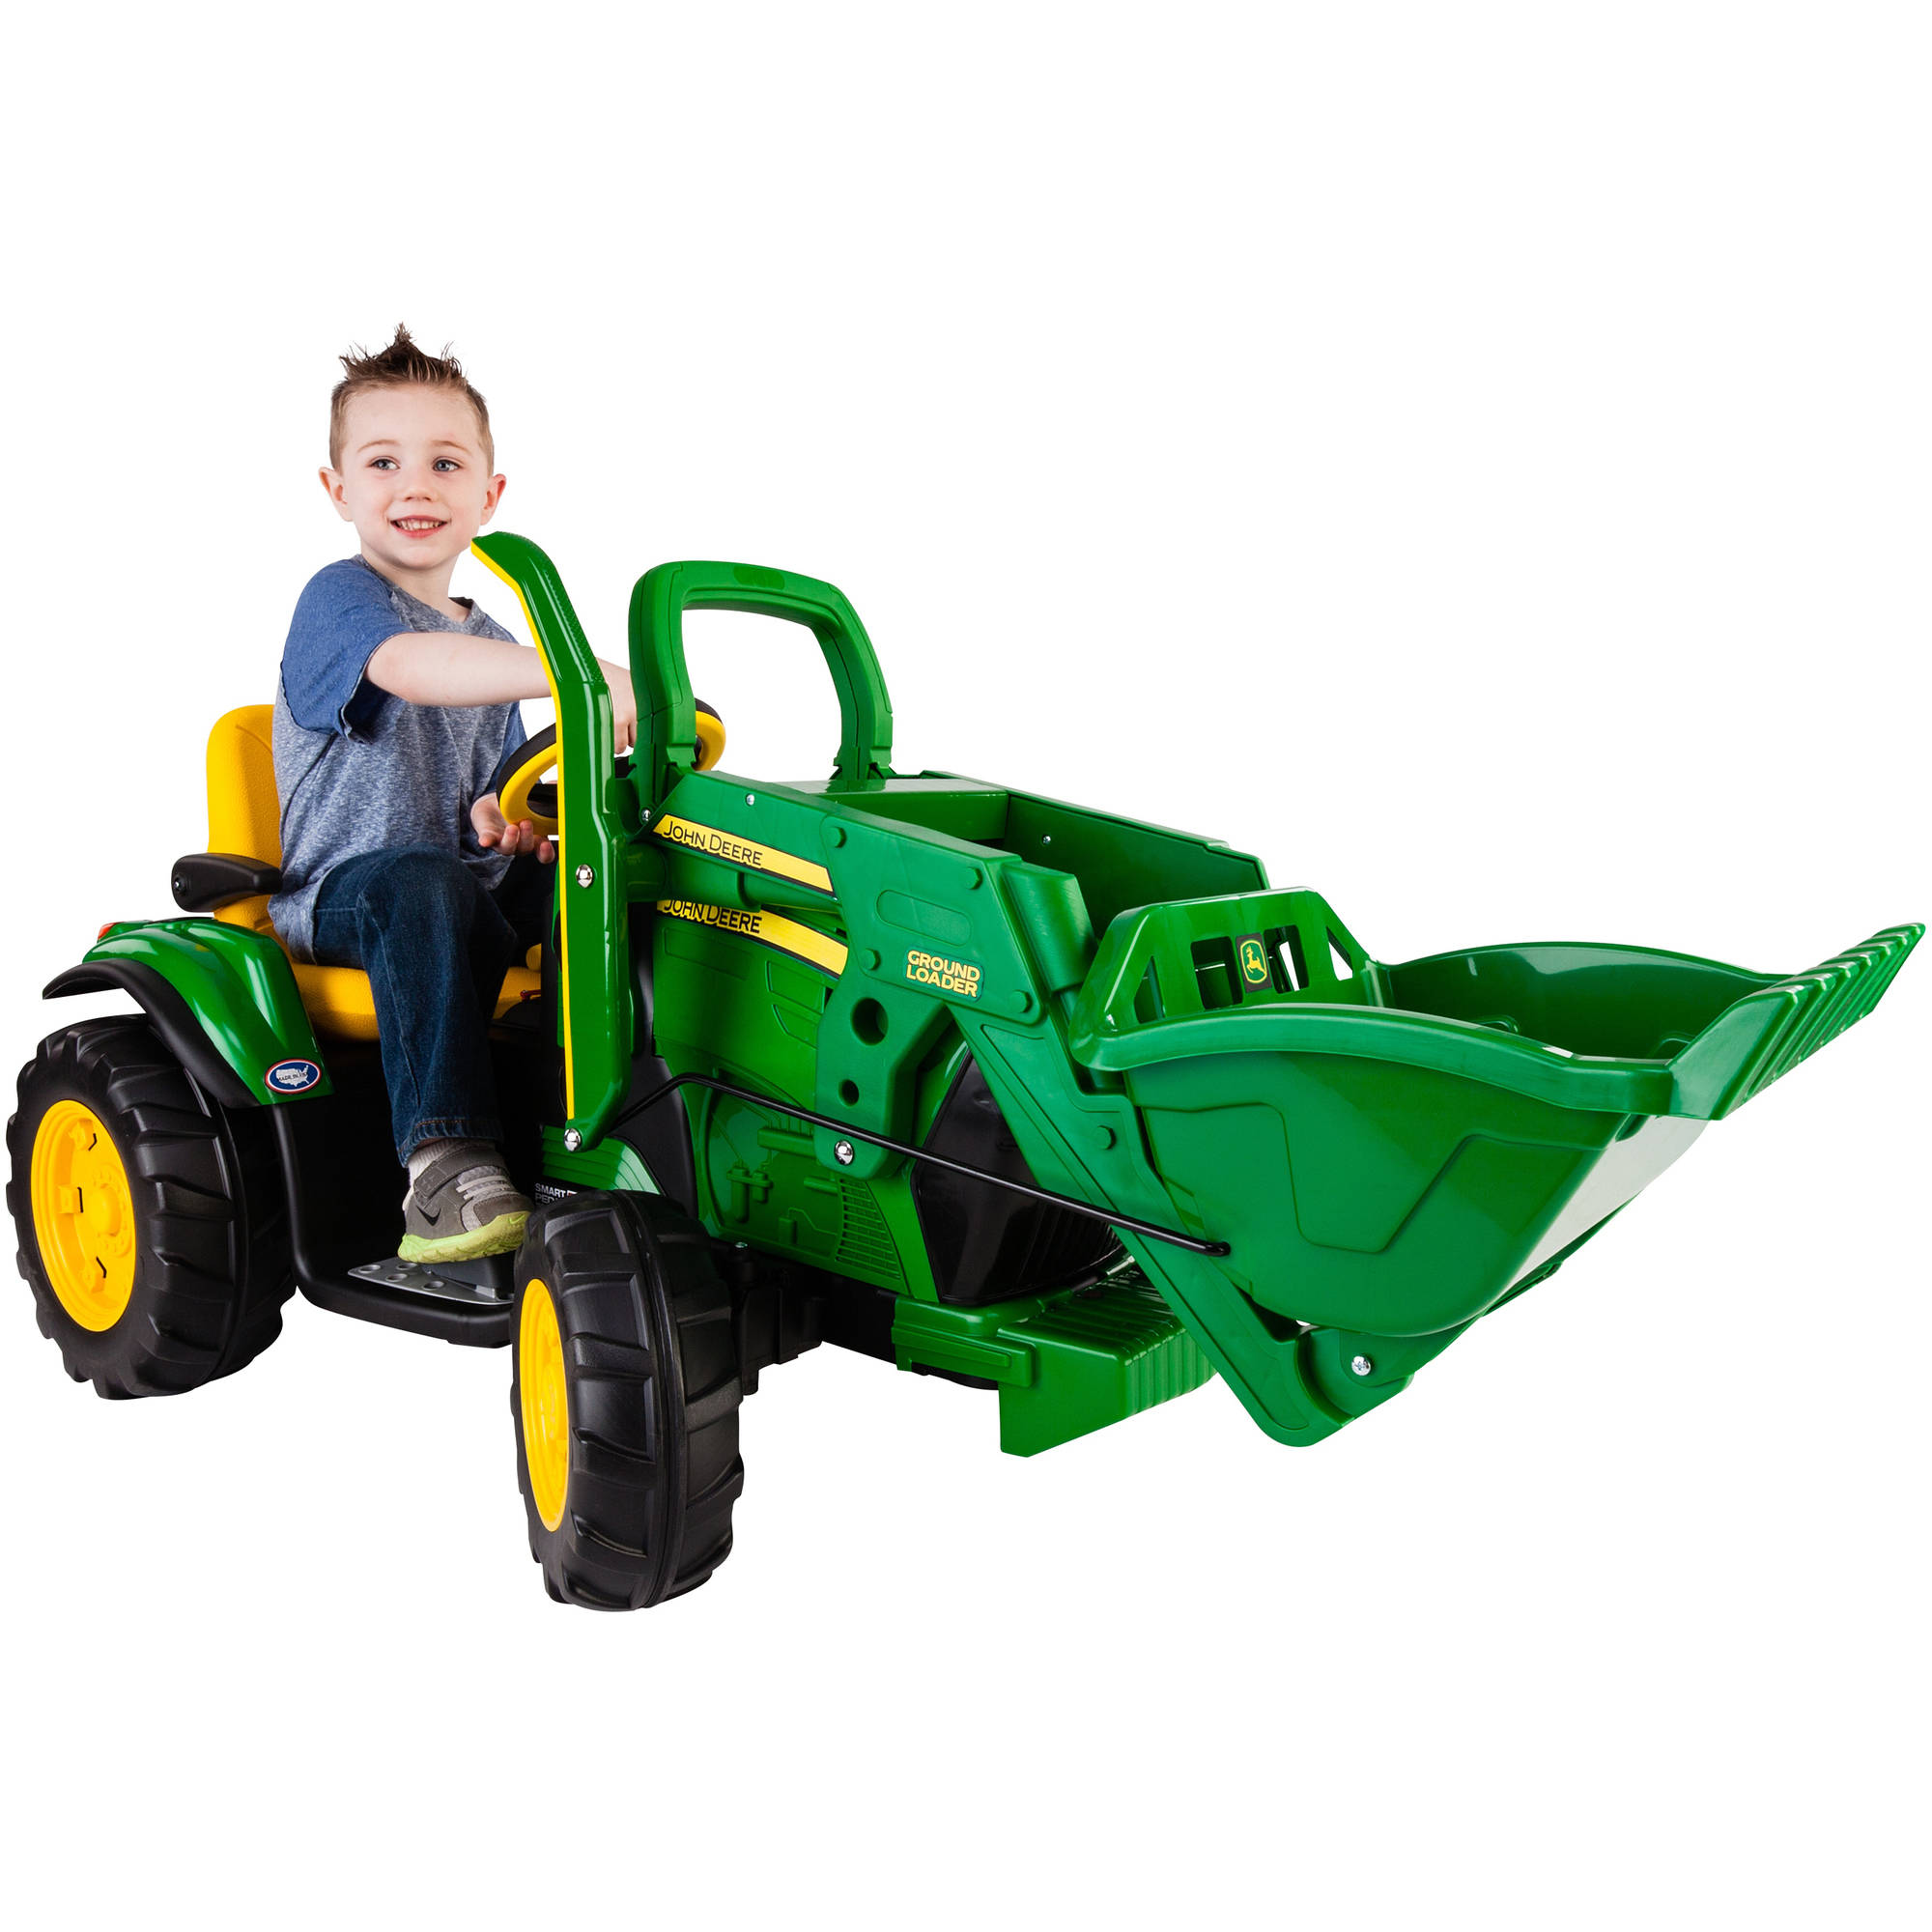 Peg Perego John Deere Ground Loader 12-Volt Battery-Powered Ride-On